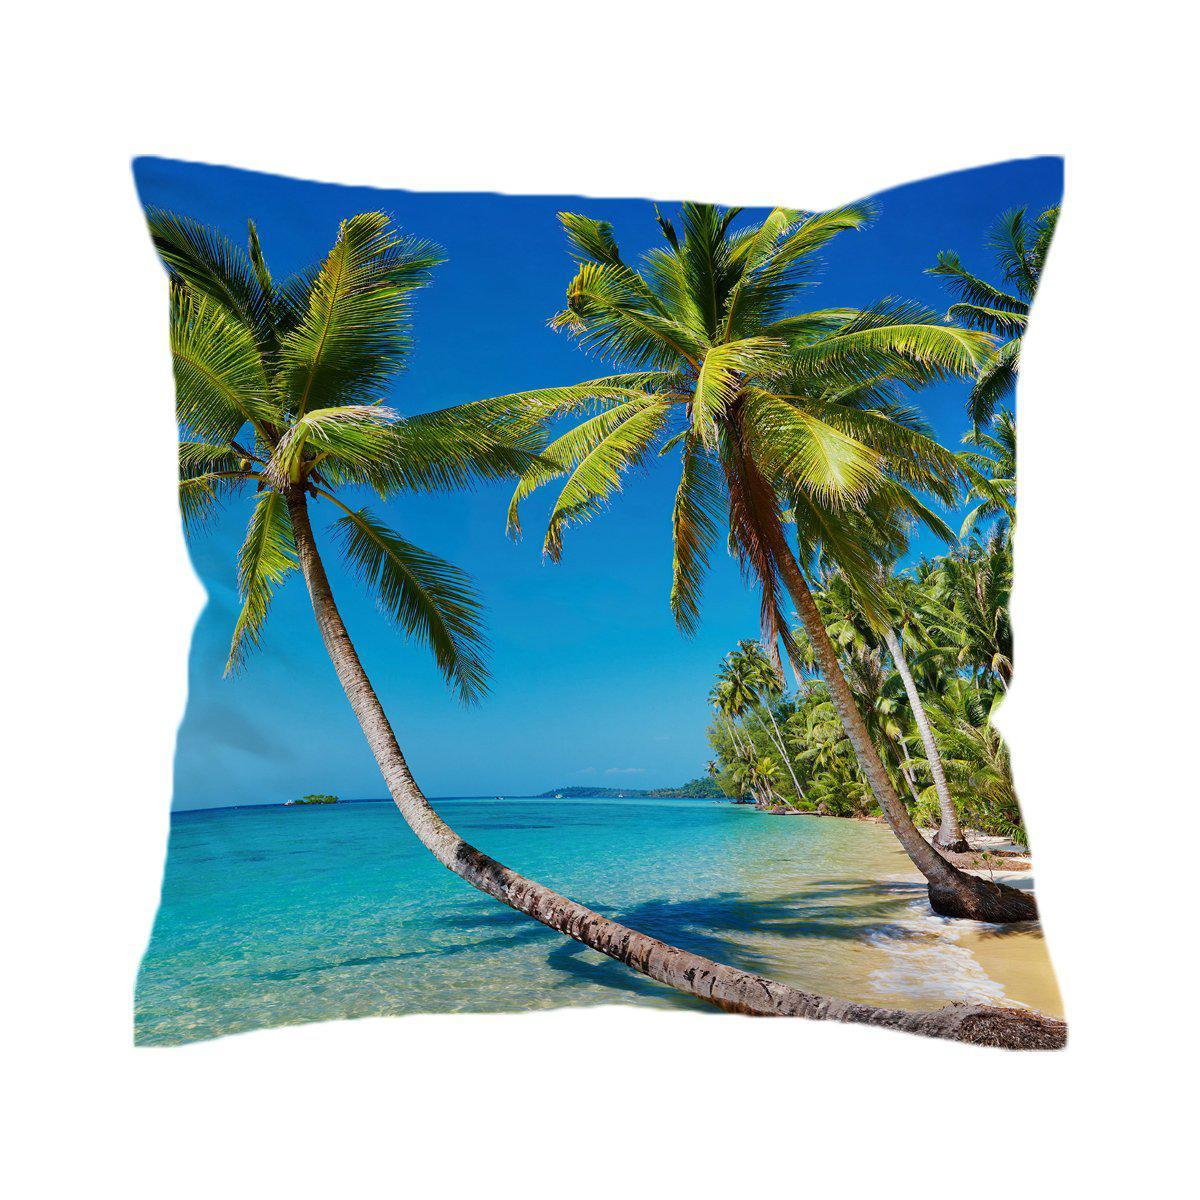 Tropical Escape Pillow Cover-Coastal Passion